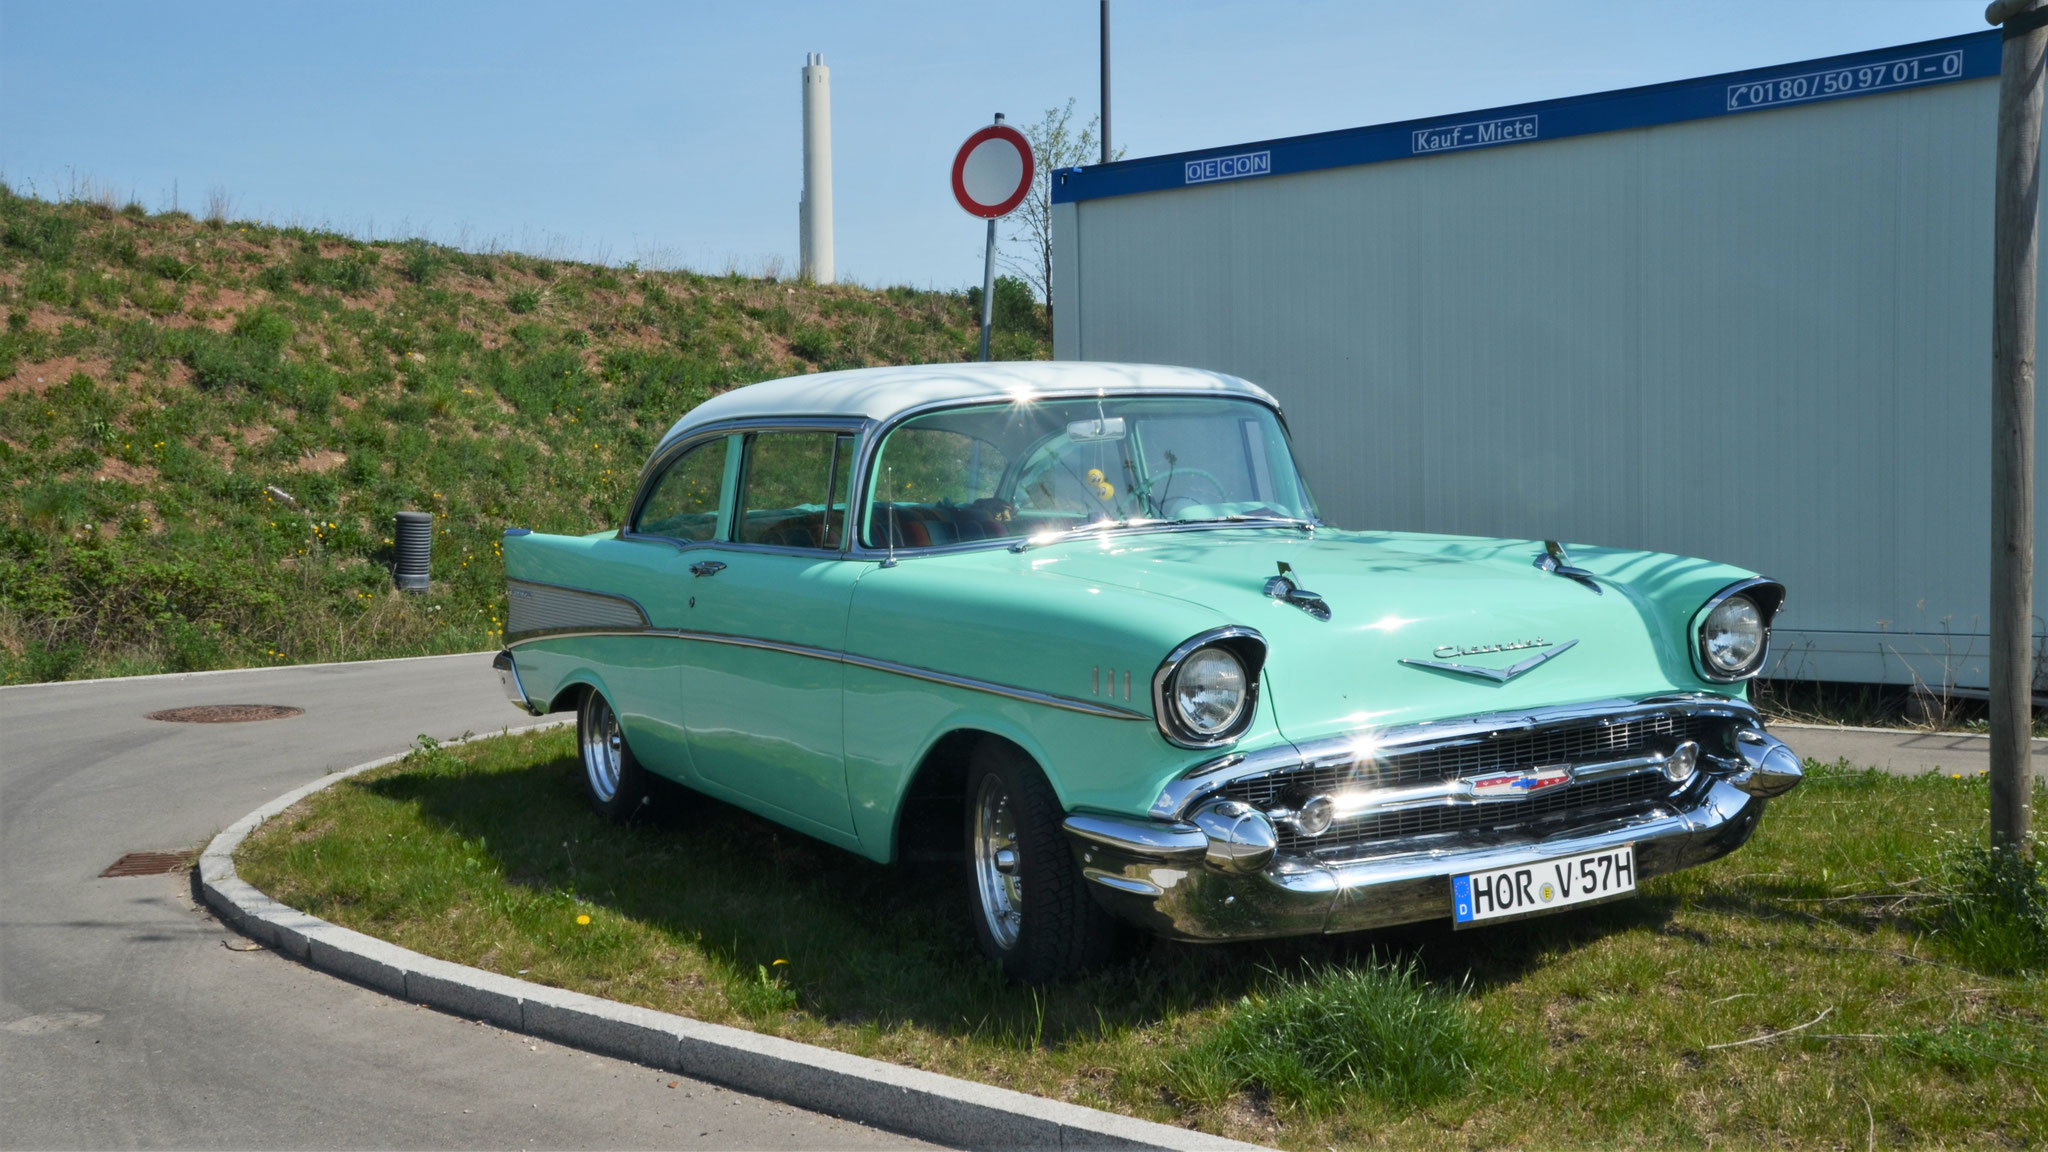 Chevrolet Bel Air - HOR-V-57H